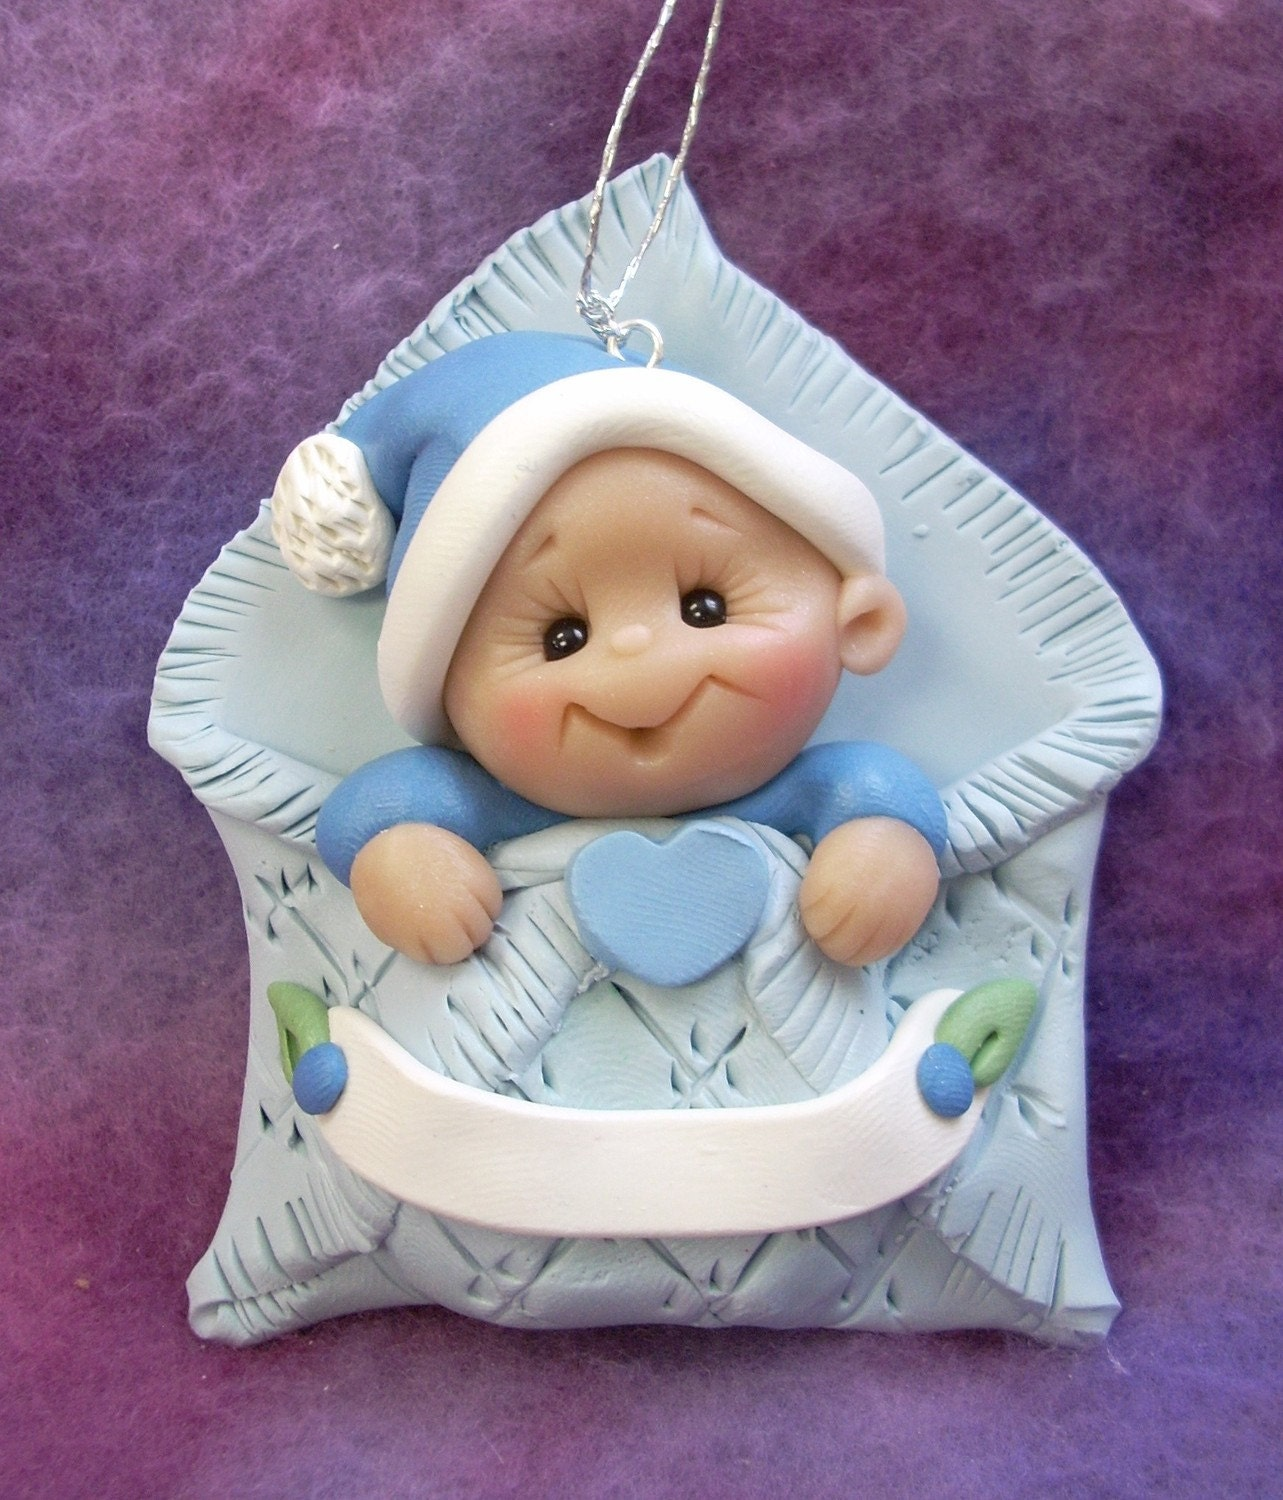 Baby S First Christmas Ornament Personalized Baby Gift